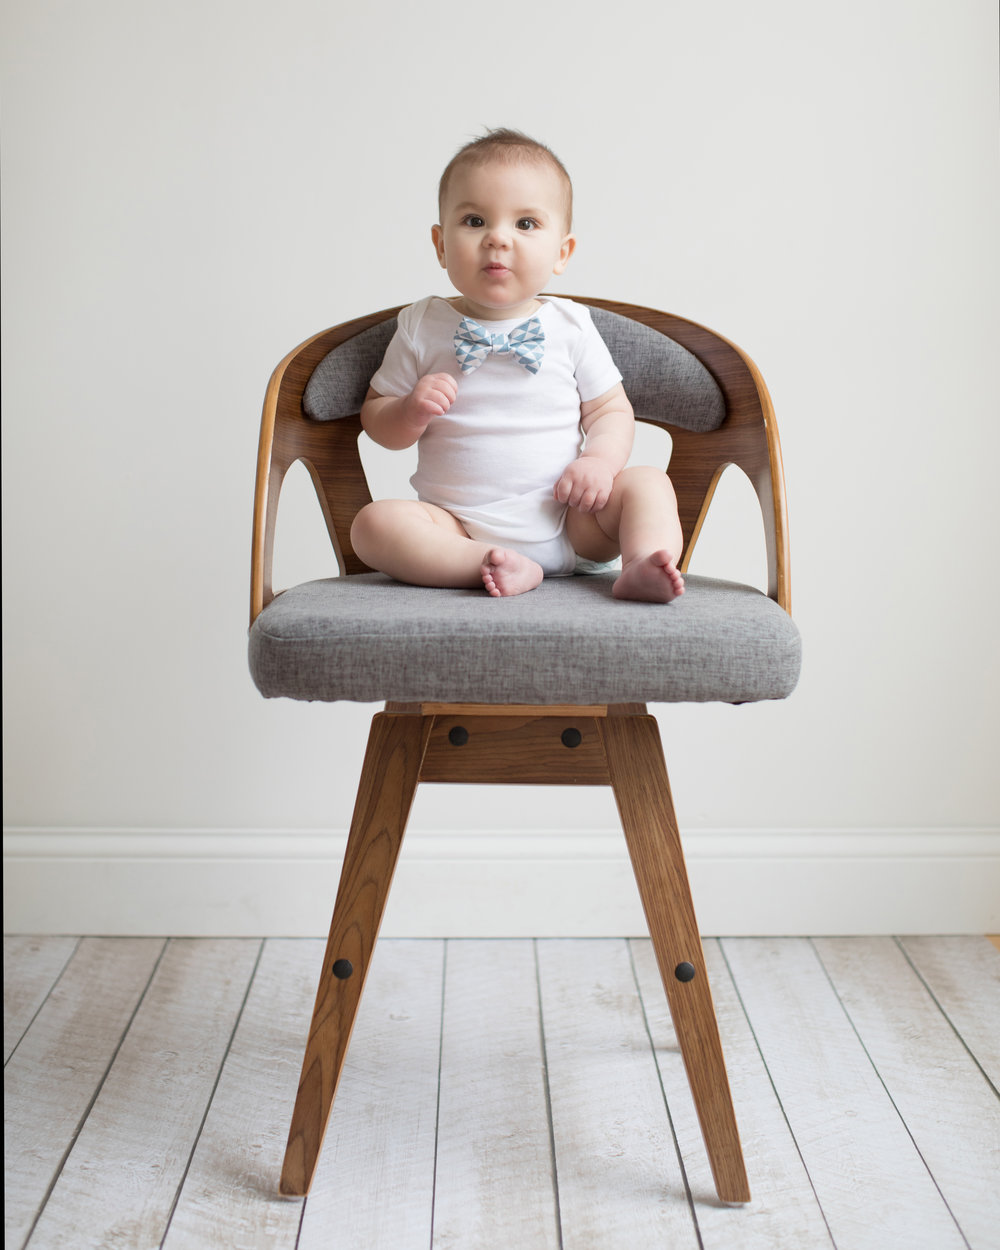 Baby boy in white onesie sitting on chair during natural light studio portrait session